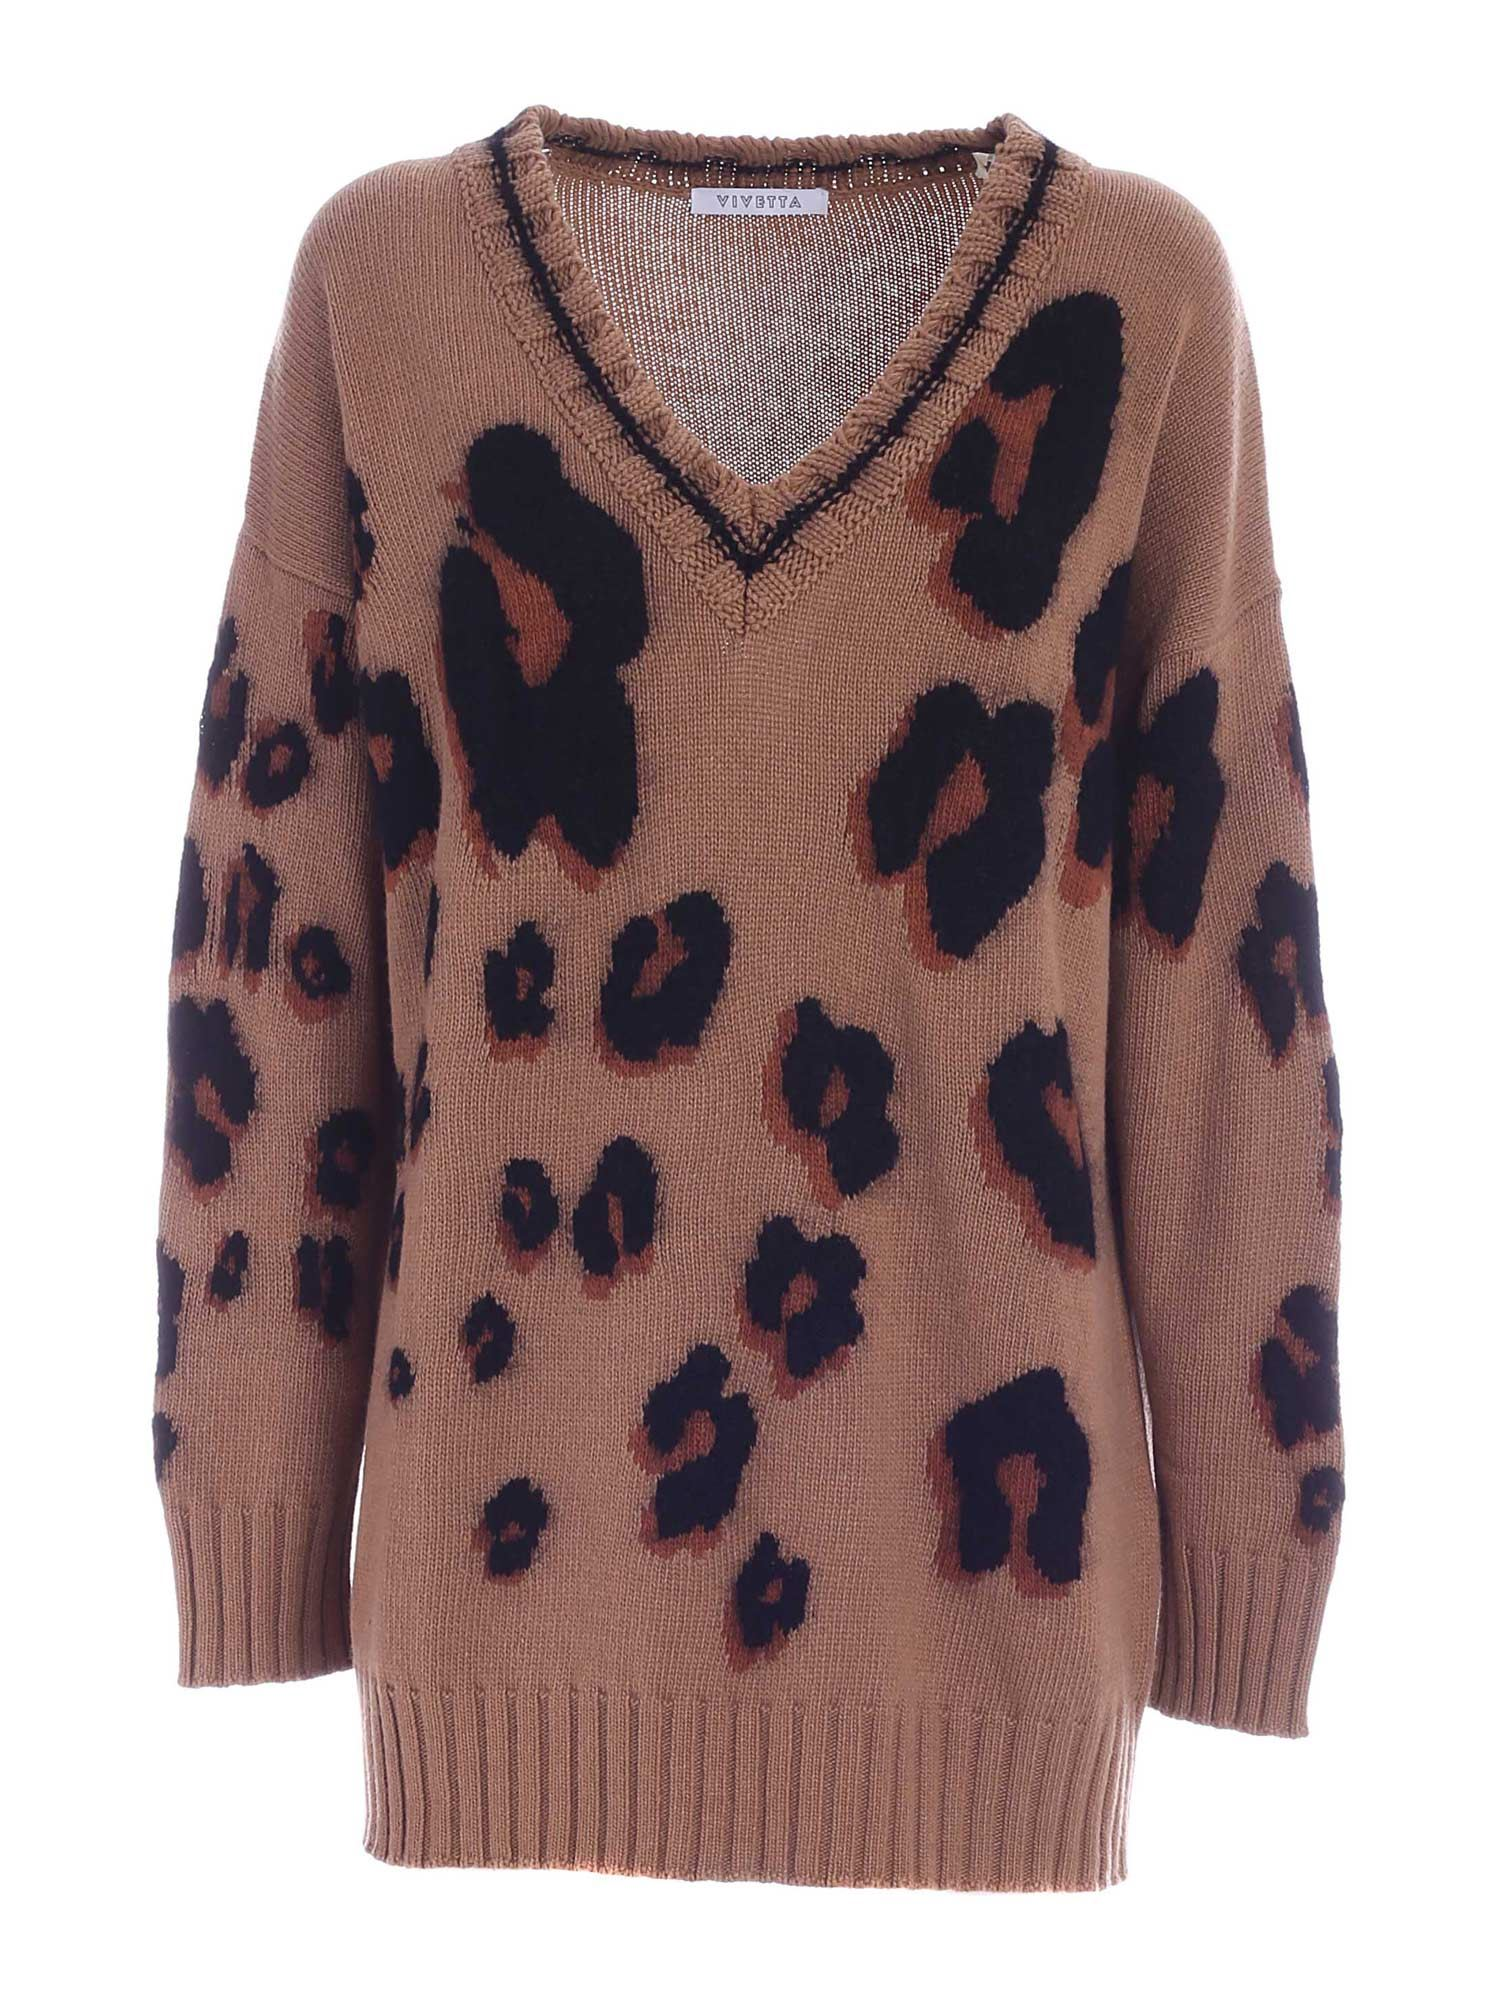 Vivetta V-NECK PULLOVER IN BROWN